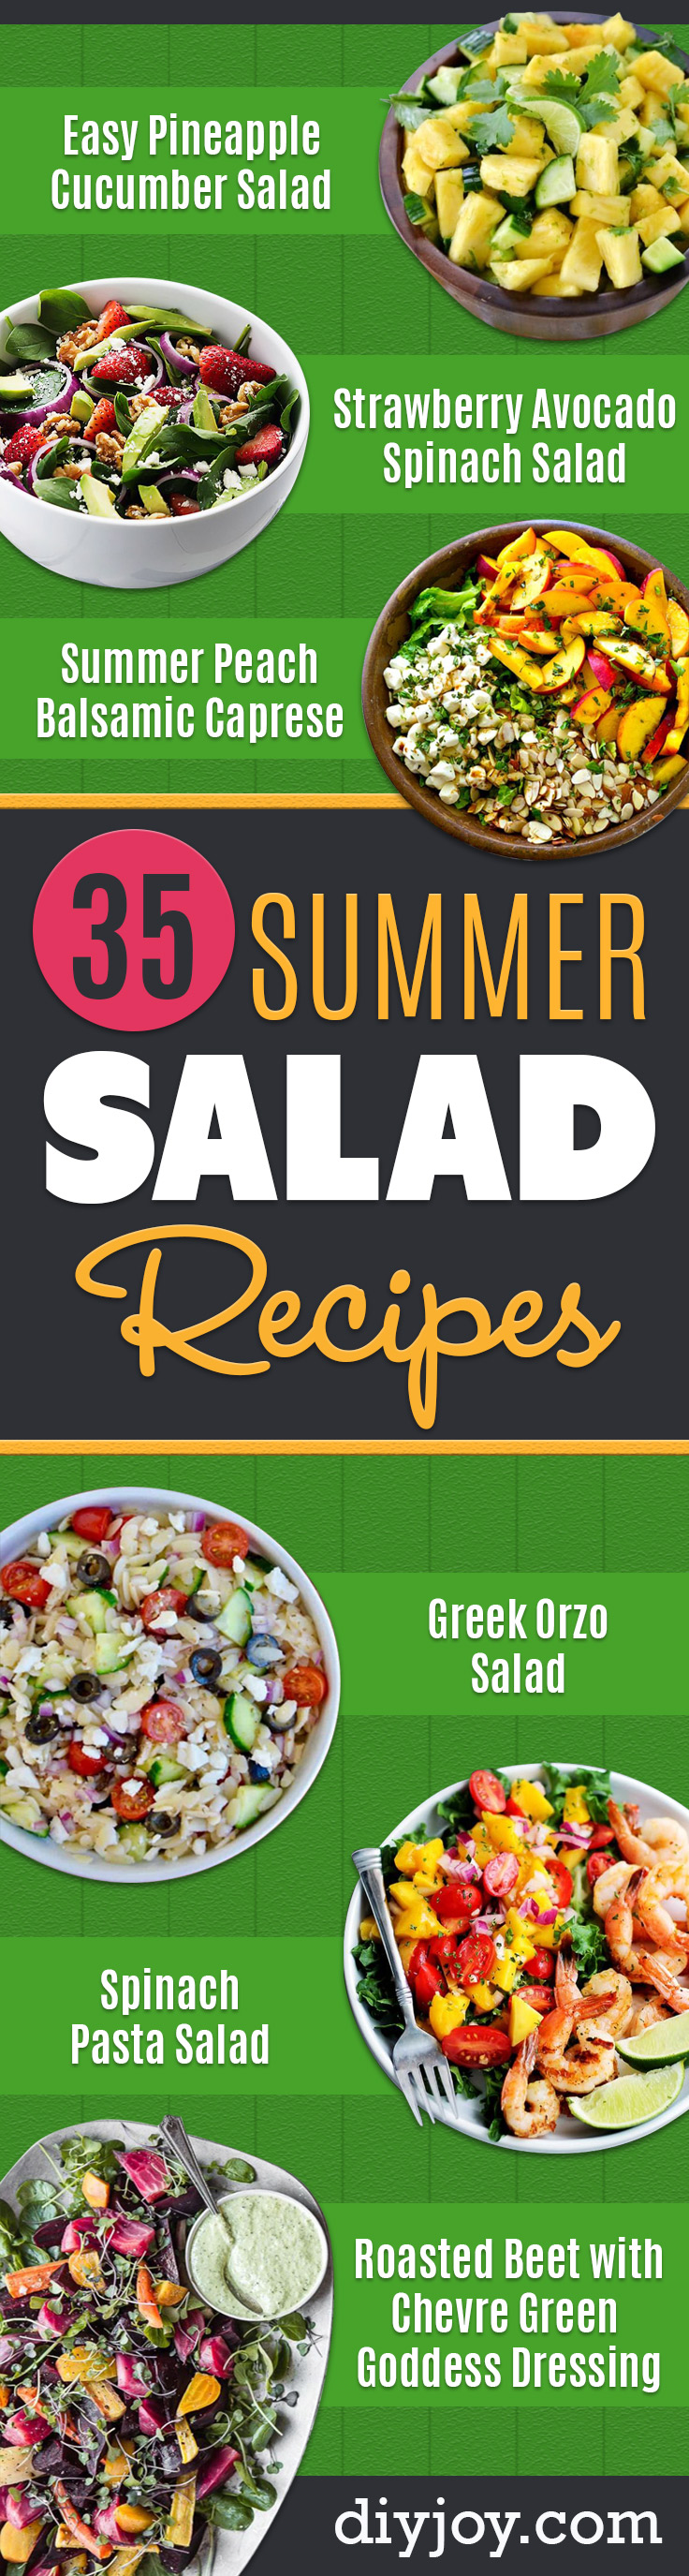 Summer Salad Recipes - Easy Salads to Make for Summer Dinners, Picnic, Barbecue and Take To Work Lunches - Grilled Foods, Fruits, Chicken, Tuna and and Shrimp Salad - Healthy Meals on A Budget - Vegetarian and Vegan Recipe Ideas - Homemade Salad Dressings and Fresh Ingredients make the Best Salads